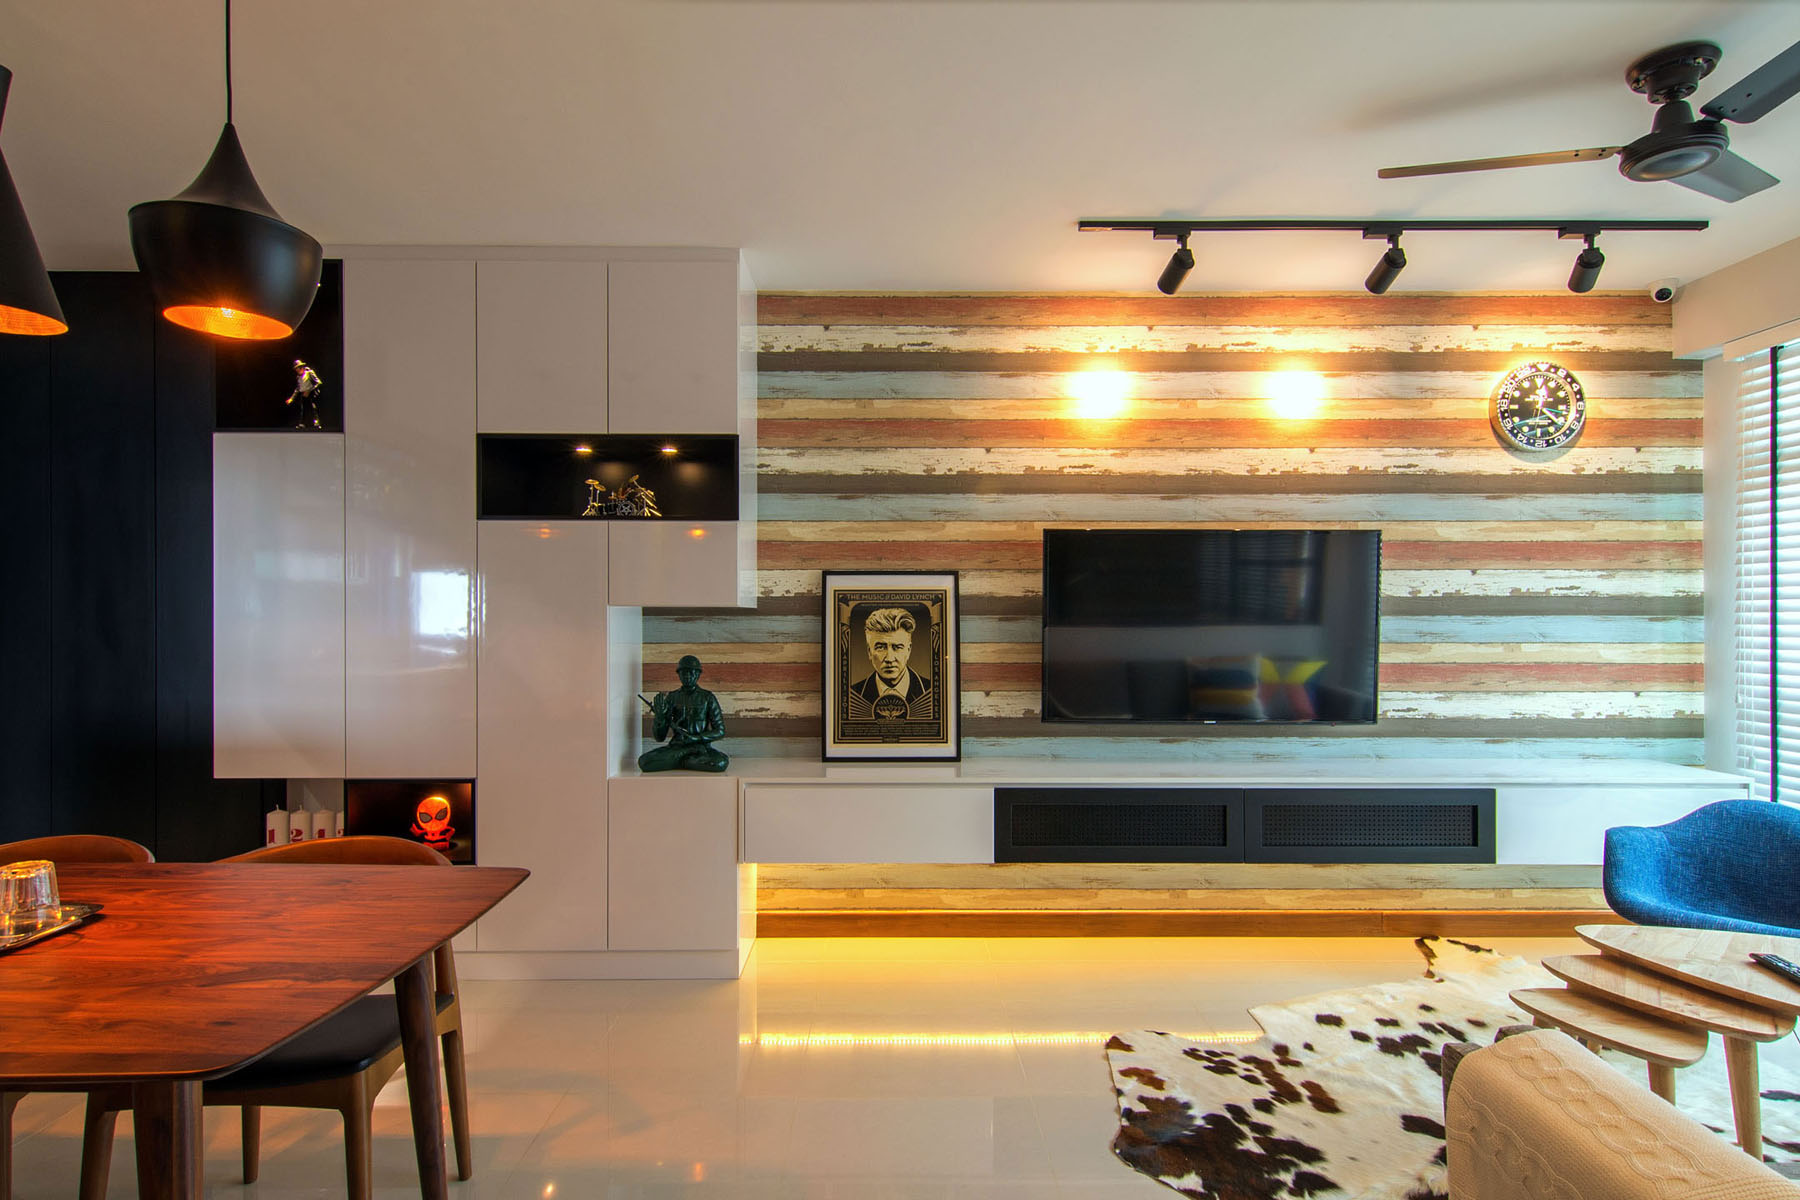 Cozy Apartment In Singapore With Stylish Elements | iDesignArch ...